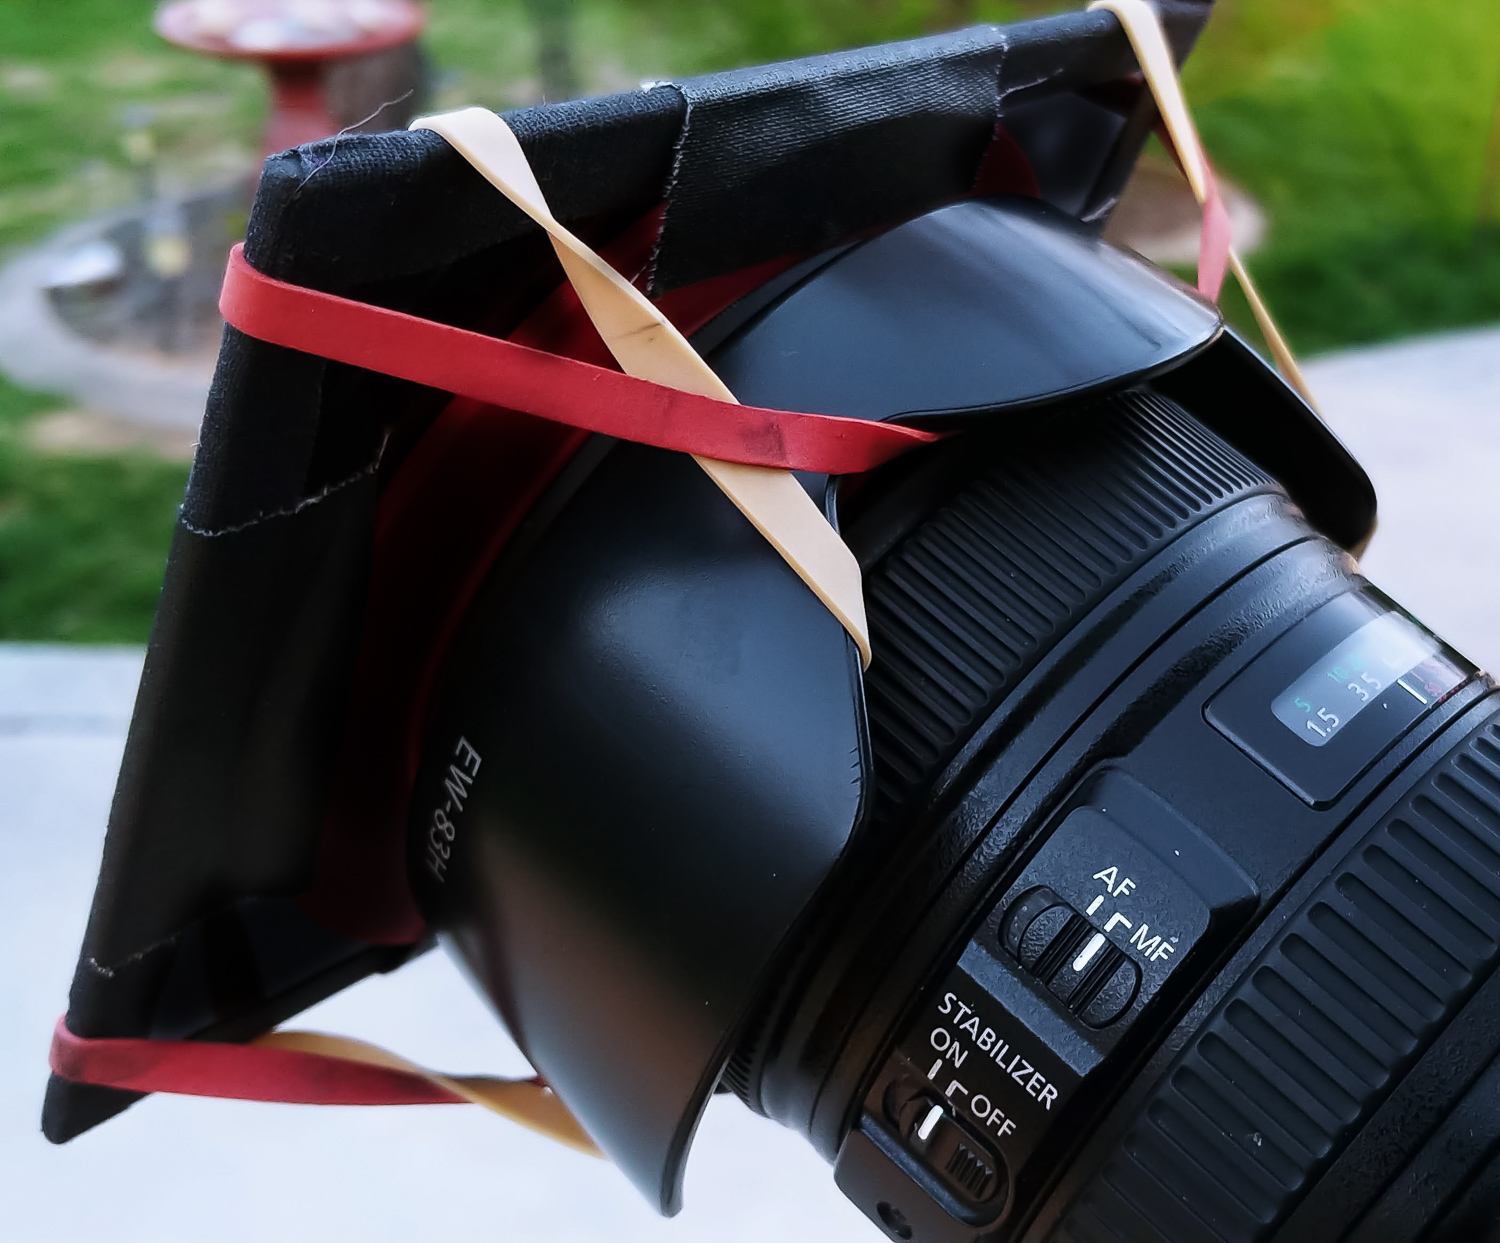 Image: Set your focus BEFORE mounting the filter and turn the switch to Manual focus (MF)